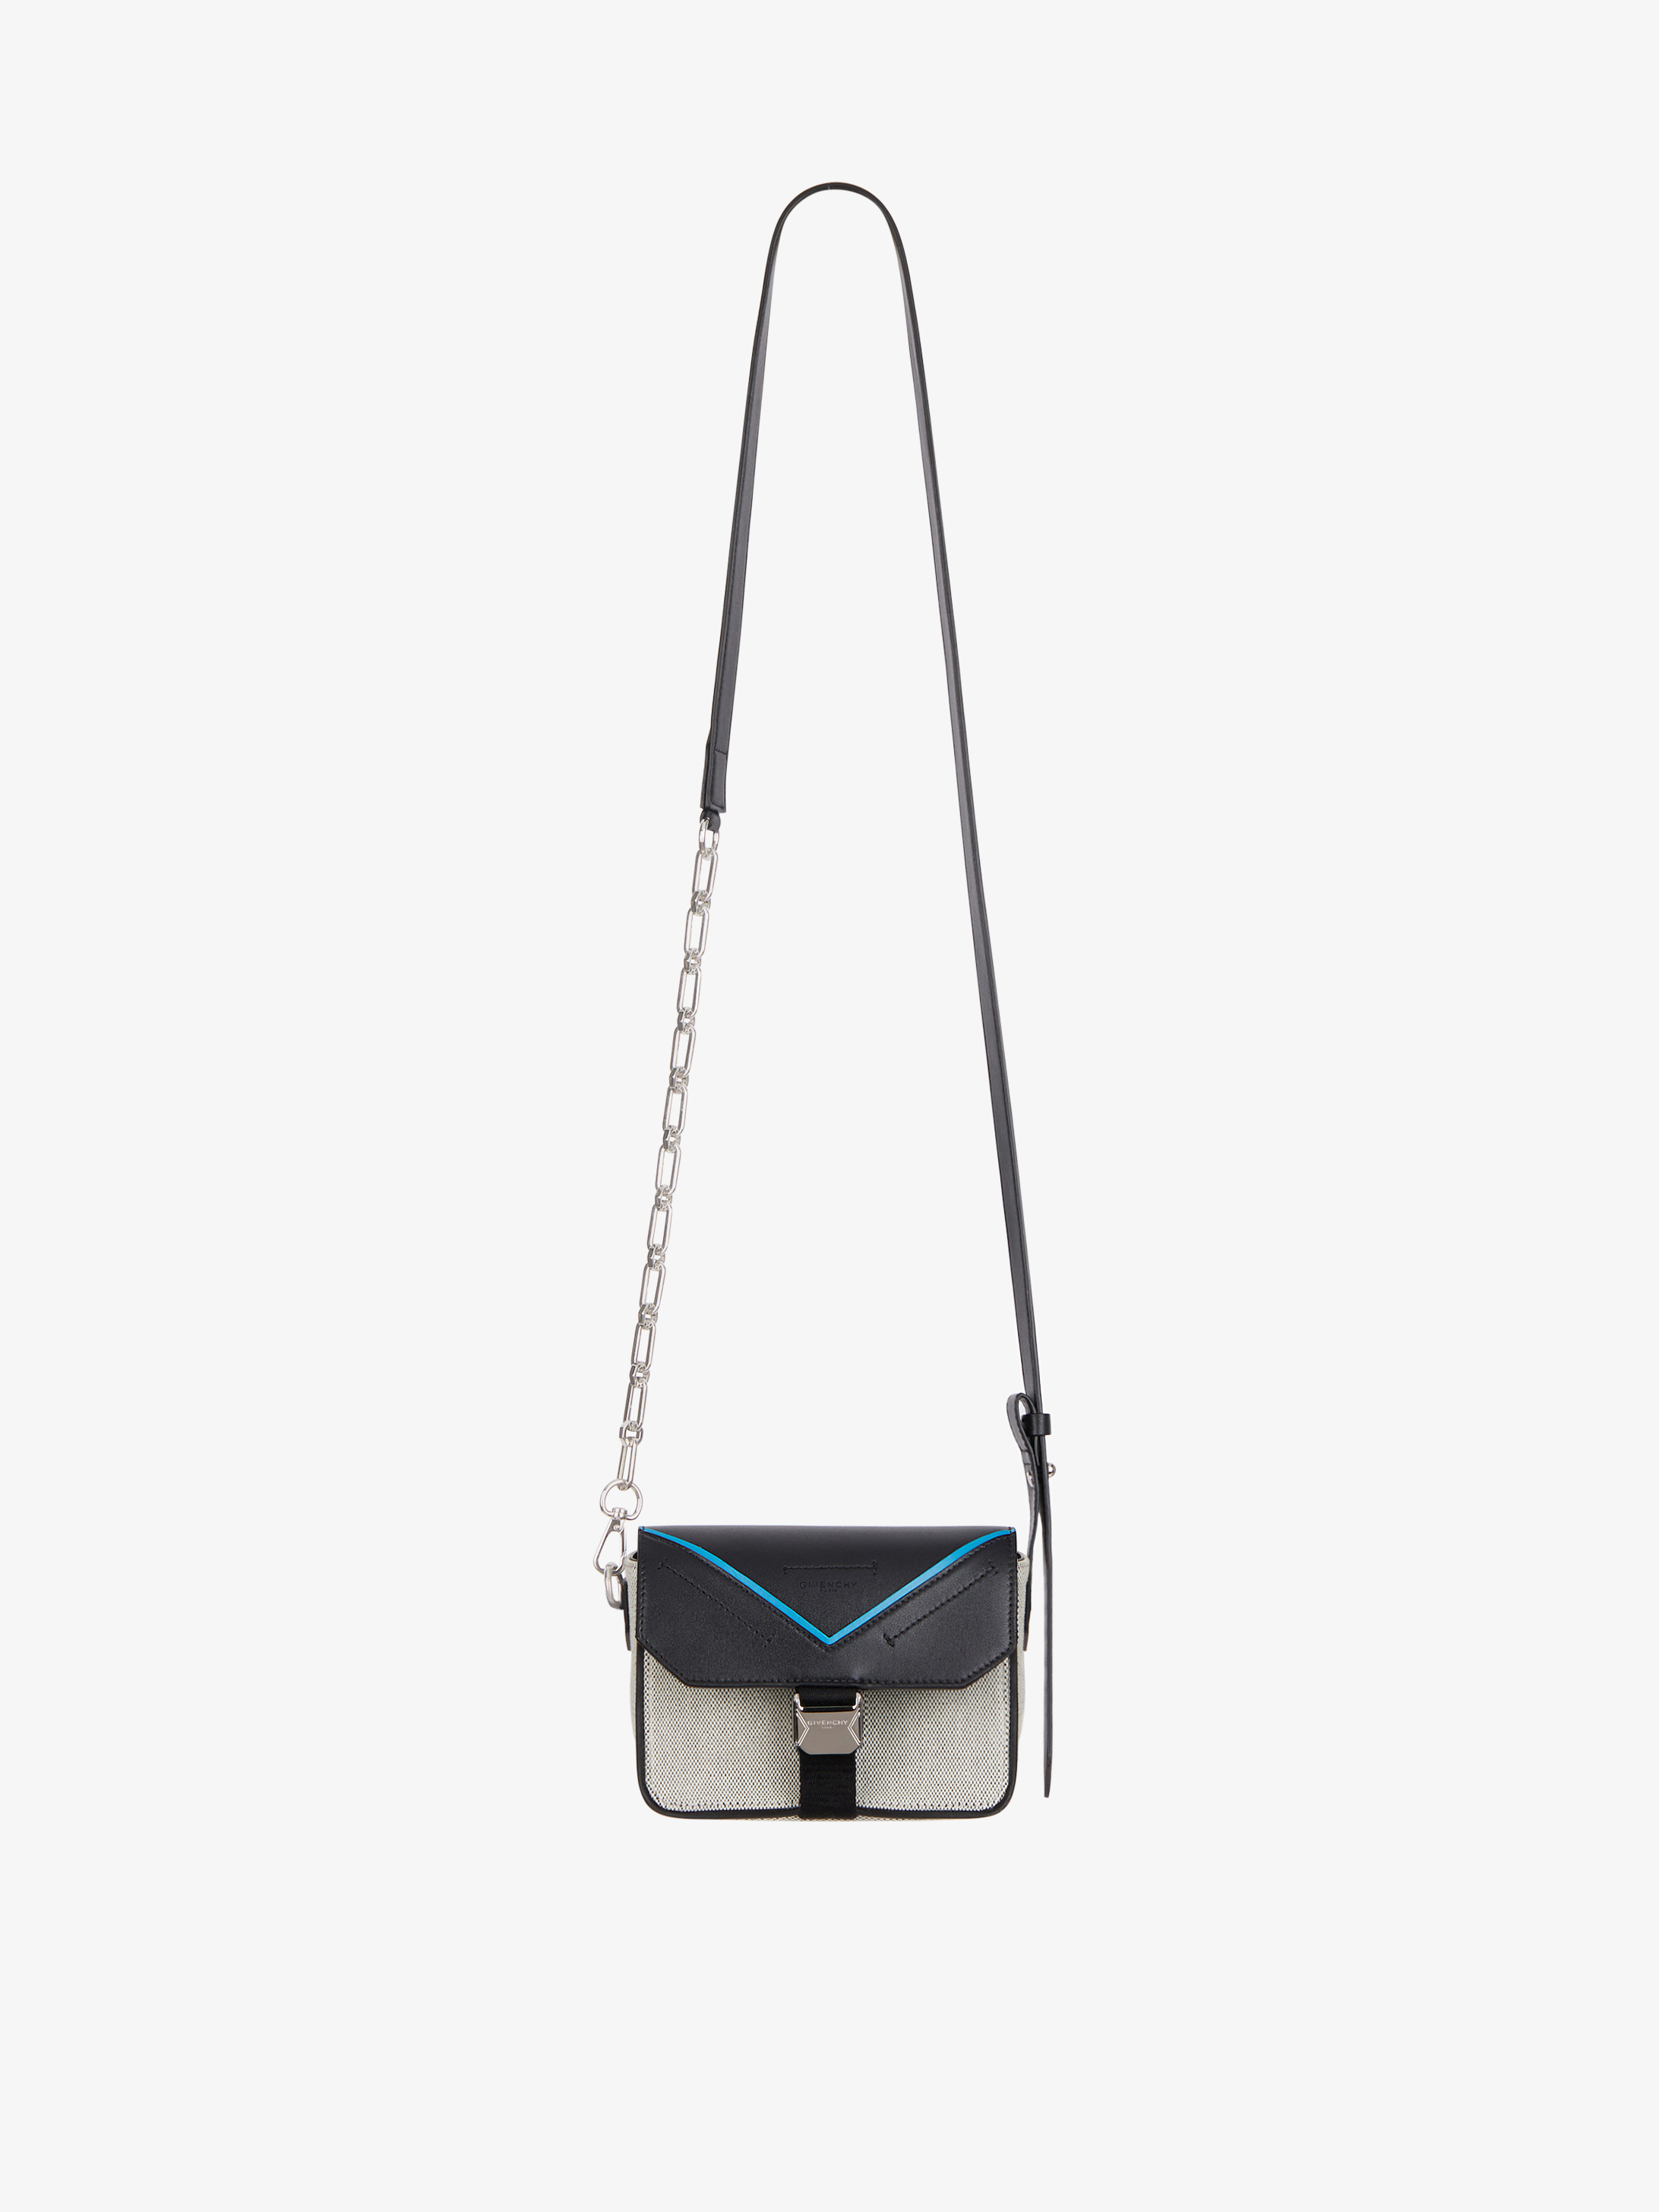 GIVENCHY PARIS Bond crossbody bag in canvas and leather